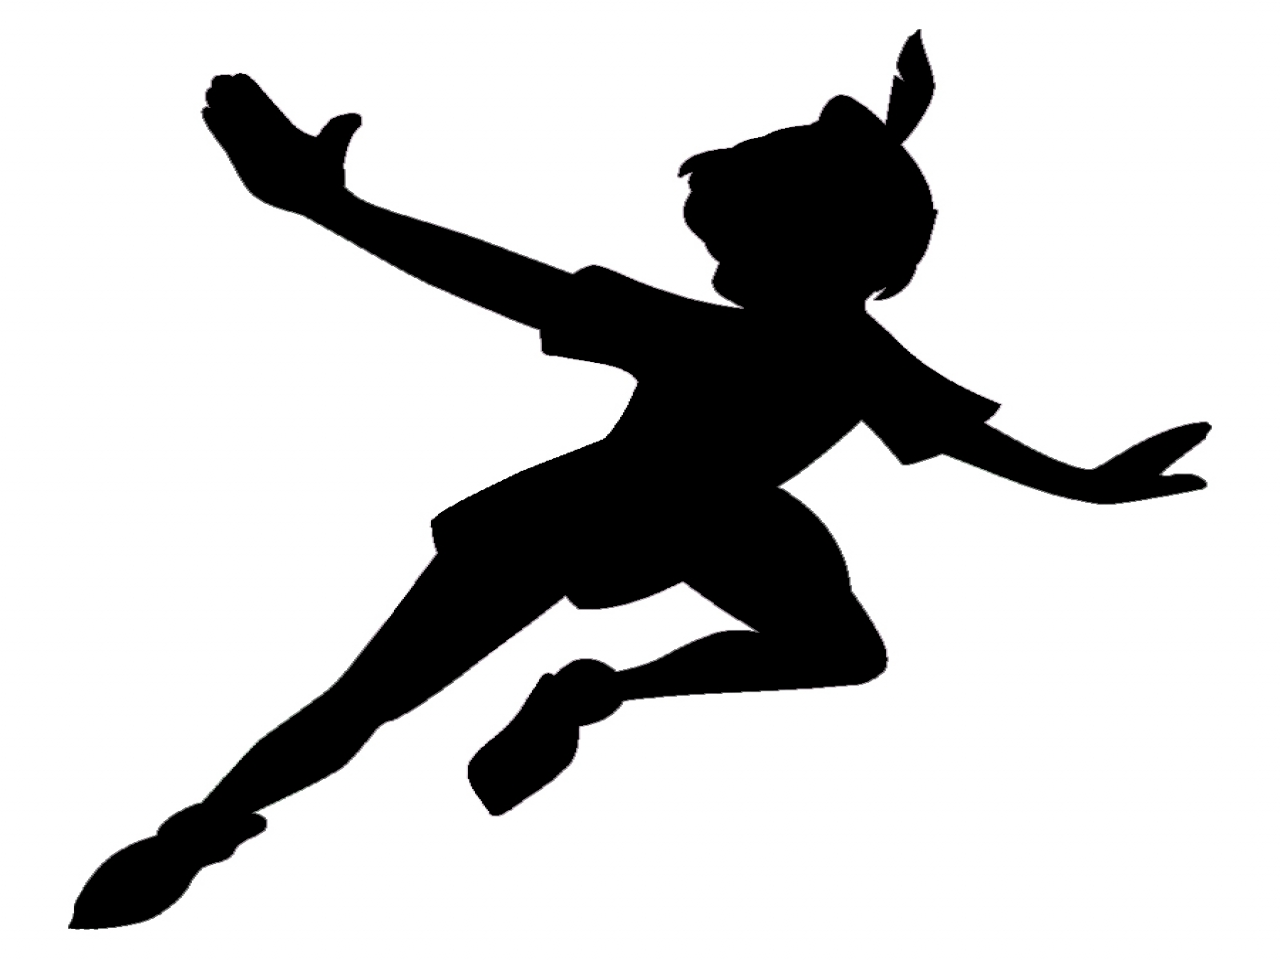 peter pan silhouette peter pan and wendy silhouette svg cricut scanncut pan peter silhouette